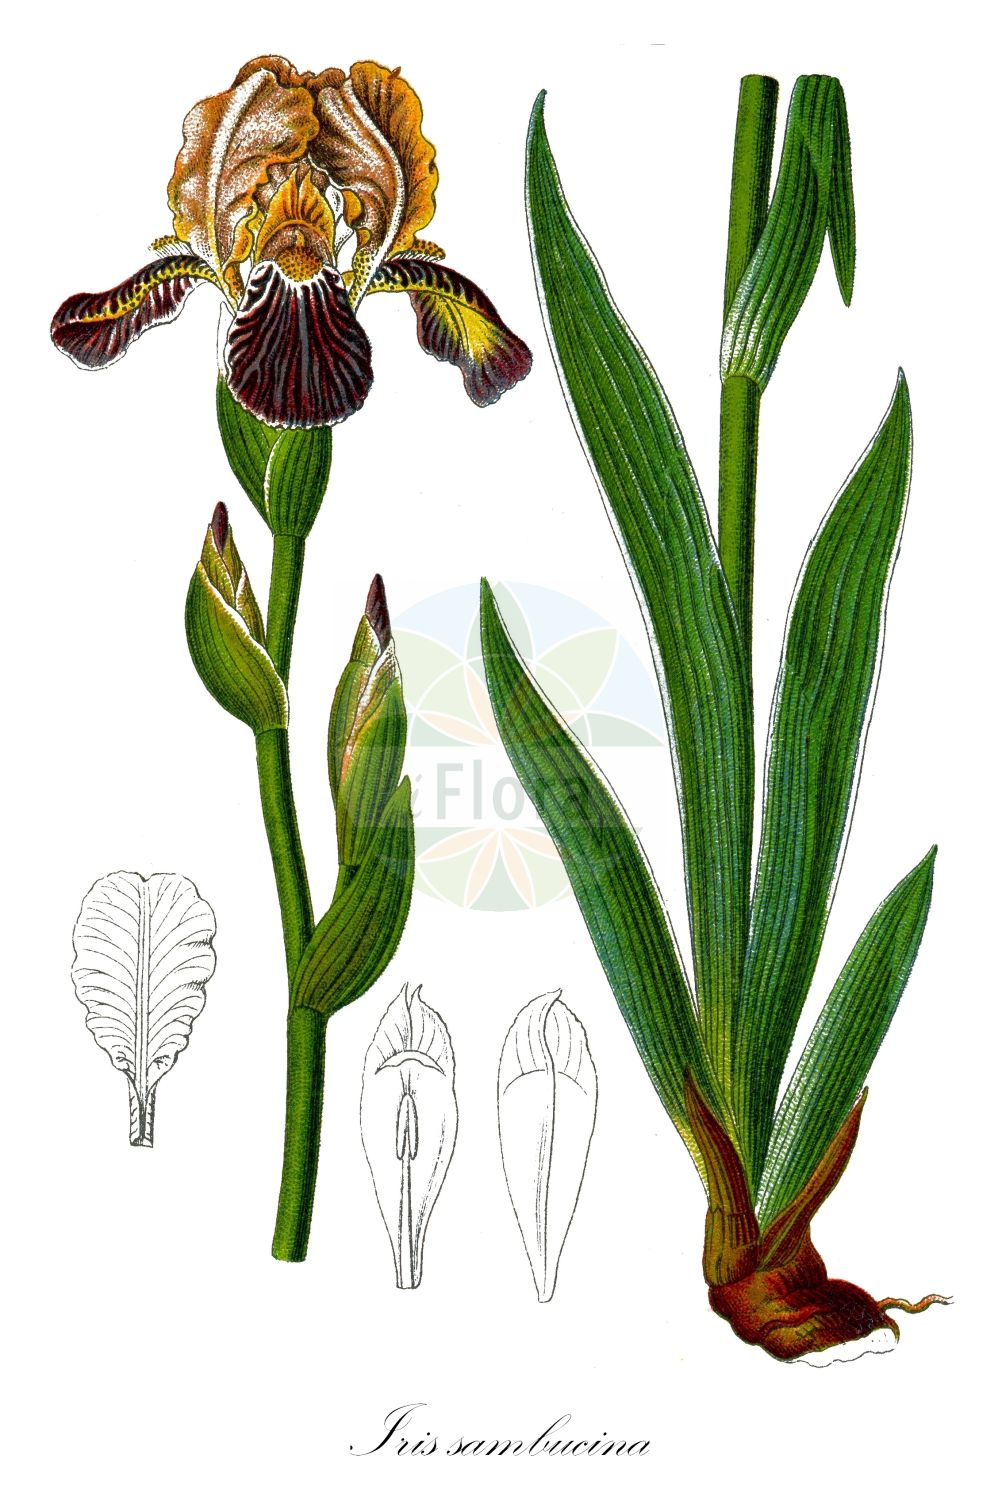 Historische Abbildung von Iris sambucina (Holunder-Schwertlilie - Elder-scented Iris). Das Bild zeigt Blatt, Bluete, Frucht und Same. ---- Historical Drawing of Iris sambucina (Holunder-Schwertlilie - Elder-scented Iris).The image is showing leaf, flower, fruit and seed. (Iris sambucina,Holunder-Schwertlilie,Elder-scented Iris,Schmutziggelbe Schwertlilie,Iris,Schwertlilie,Iris,Iridaceae,Schwertliliengewaechse,Iris family,Blatt,Bluete,Frucht,Same,leaf,flower,fruit,seed,Sturm (1796f))